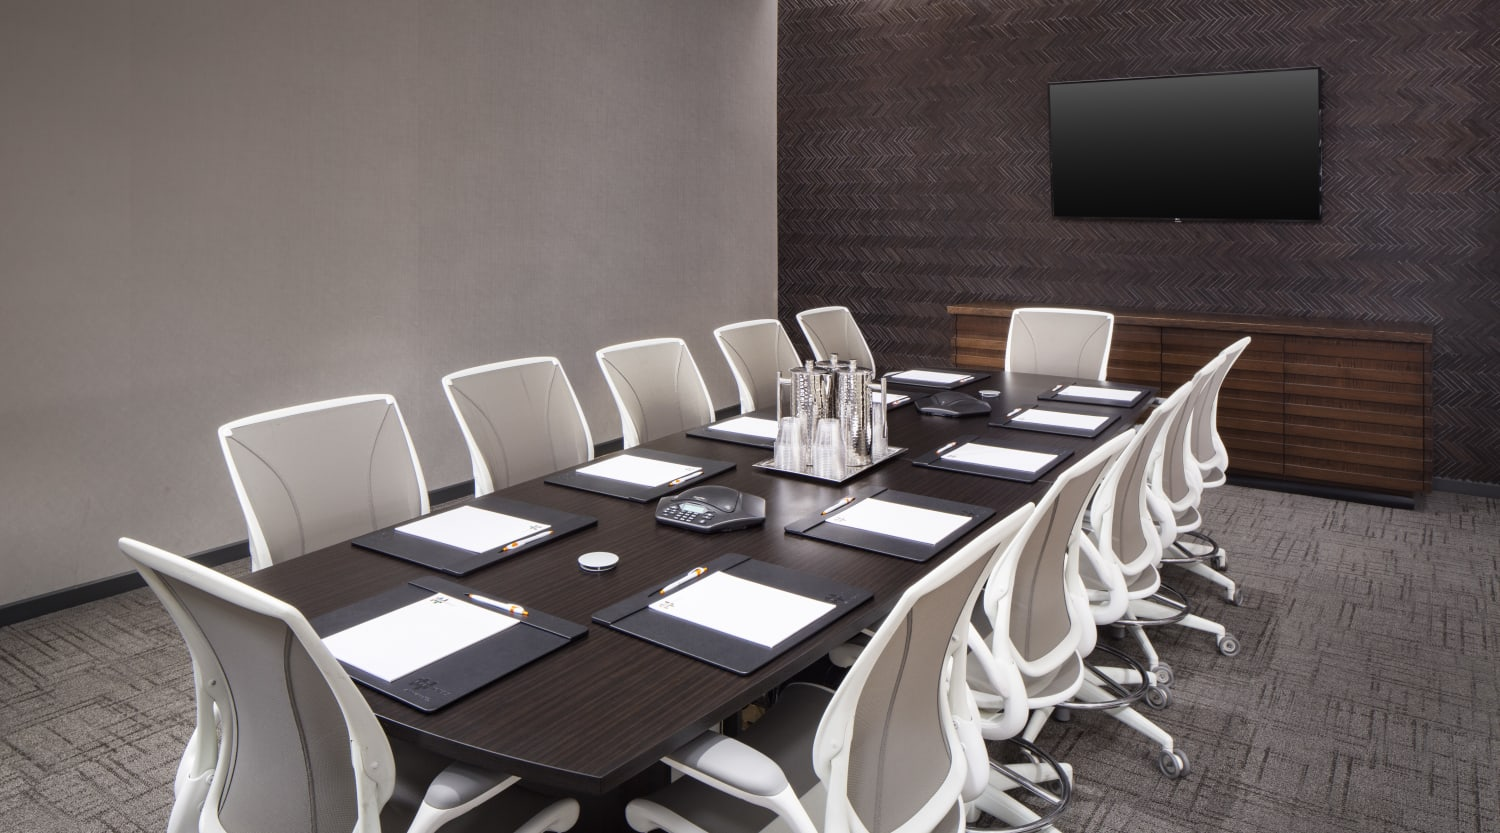 221 East 44th Street, Room Conference Room/ Boardroom